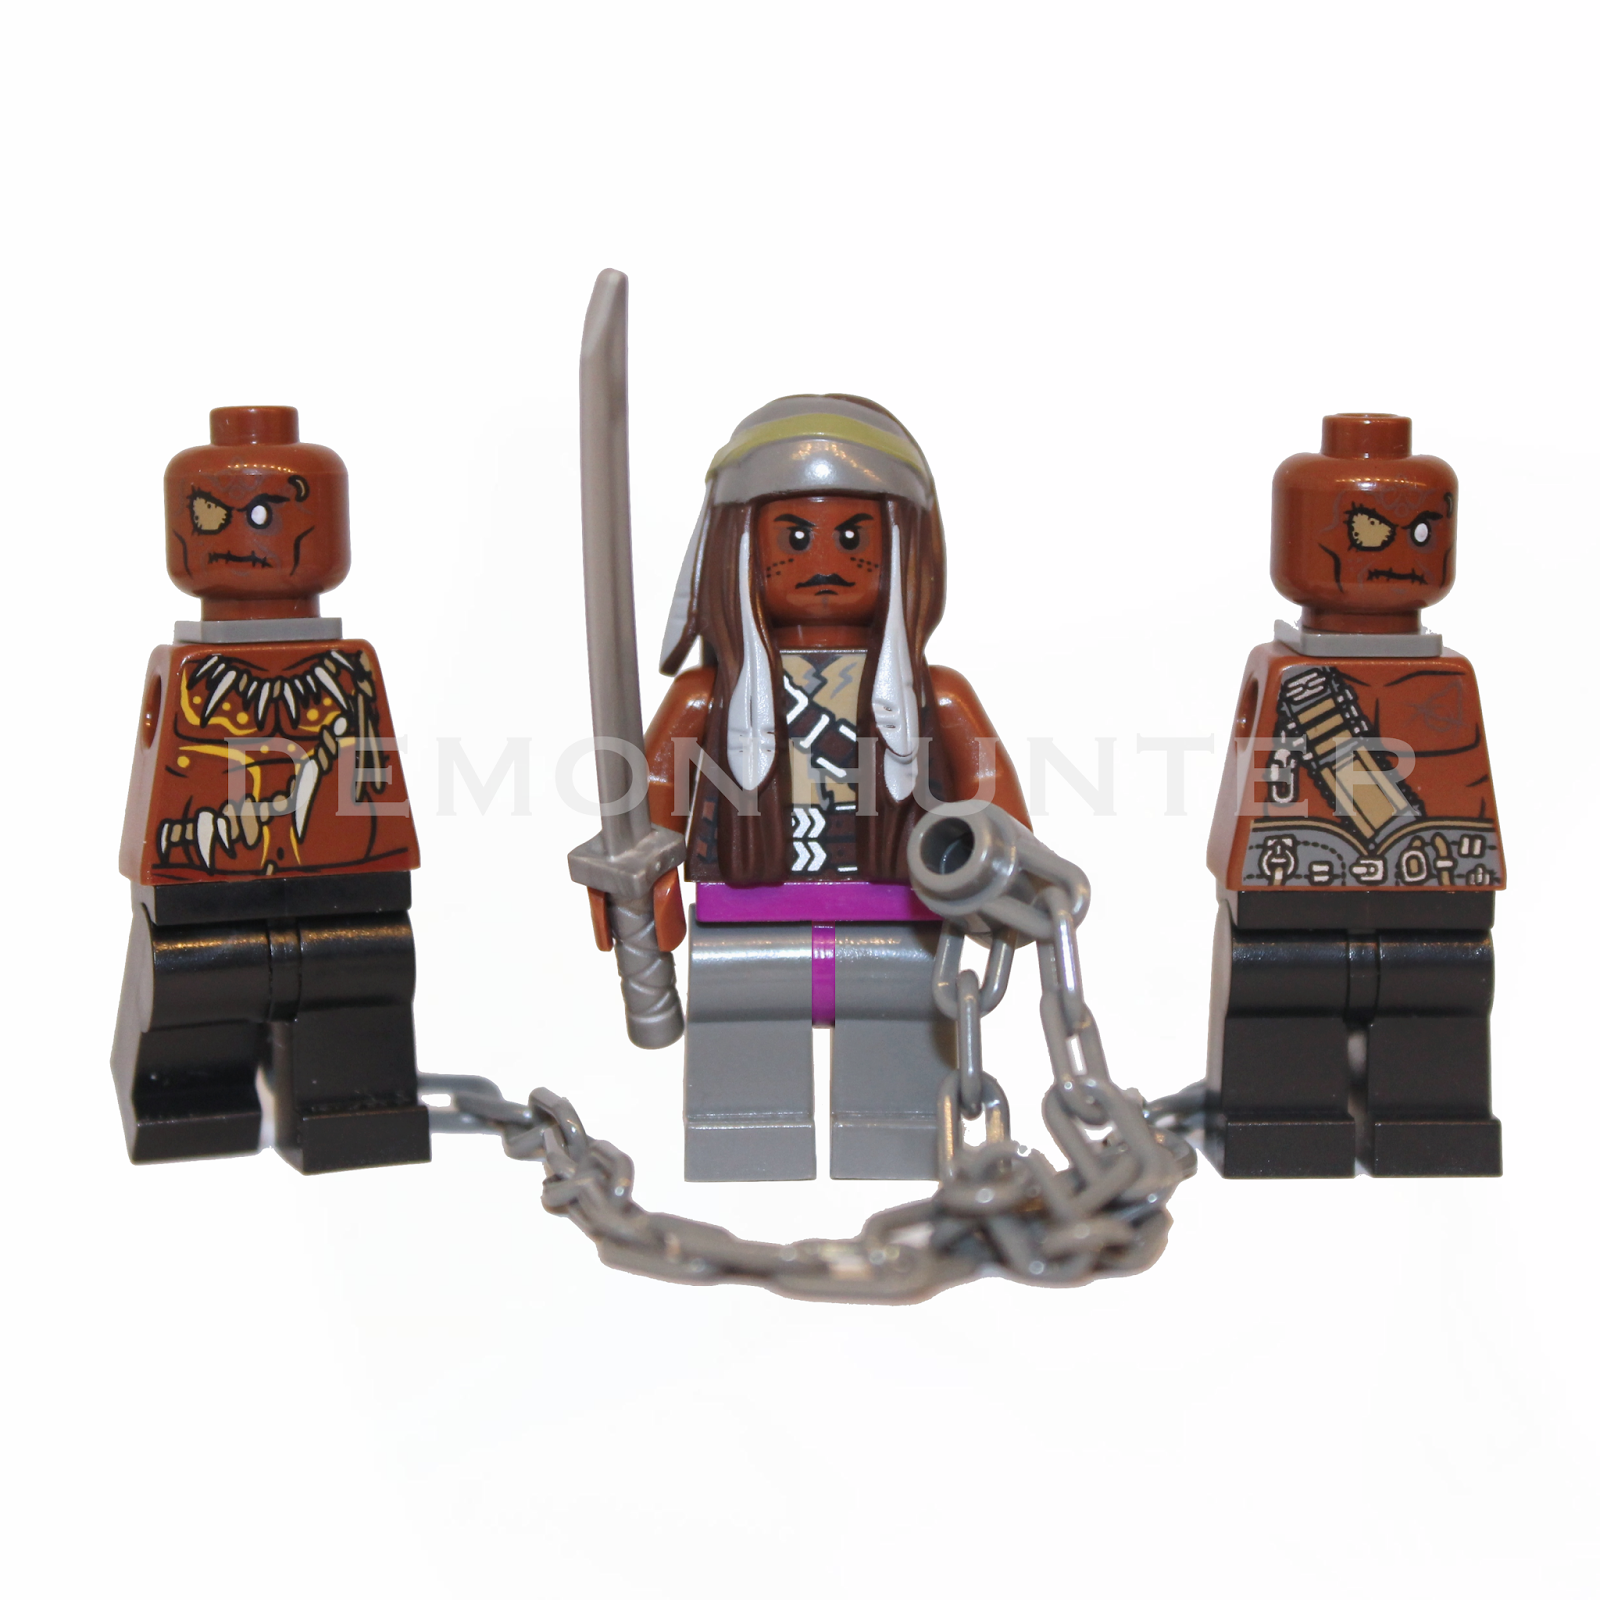 Lego Walking Dead, Lego Michonne, Custom Lego, Walking Dead Lego, Michonne, The Walking Dead, Michonne Lego, Lego Blog